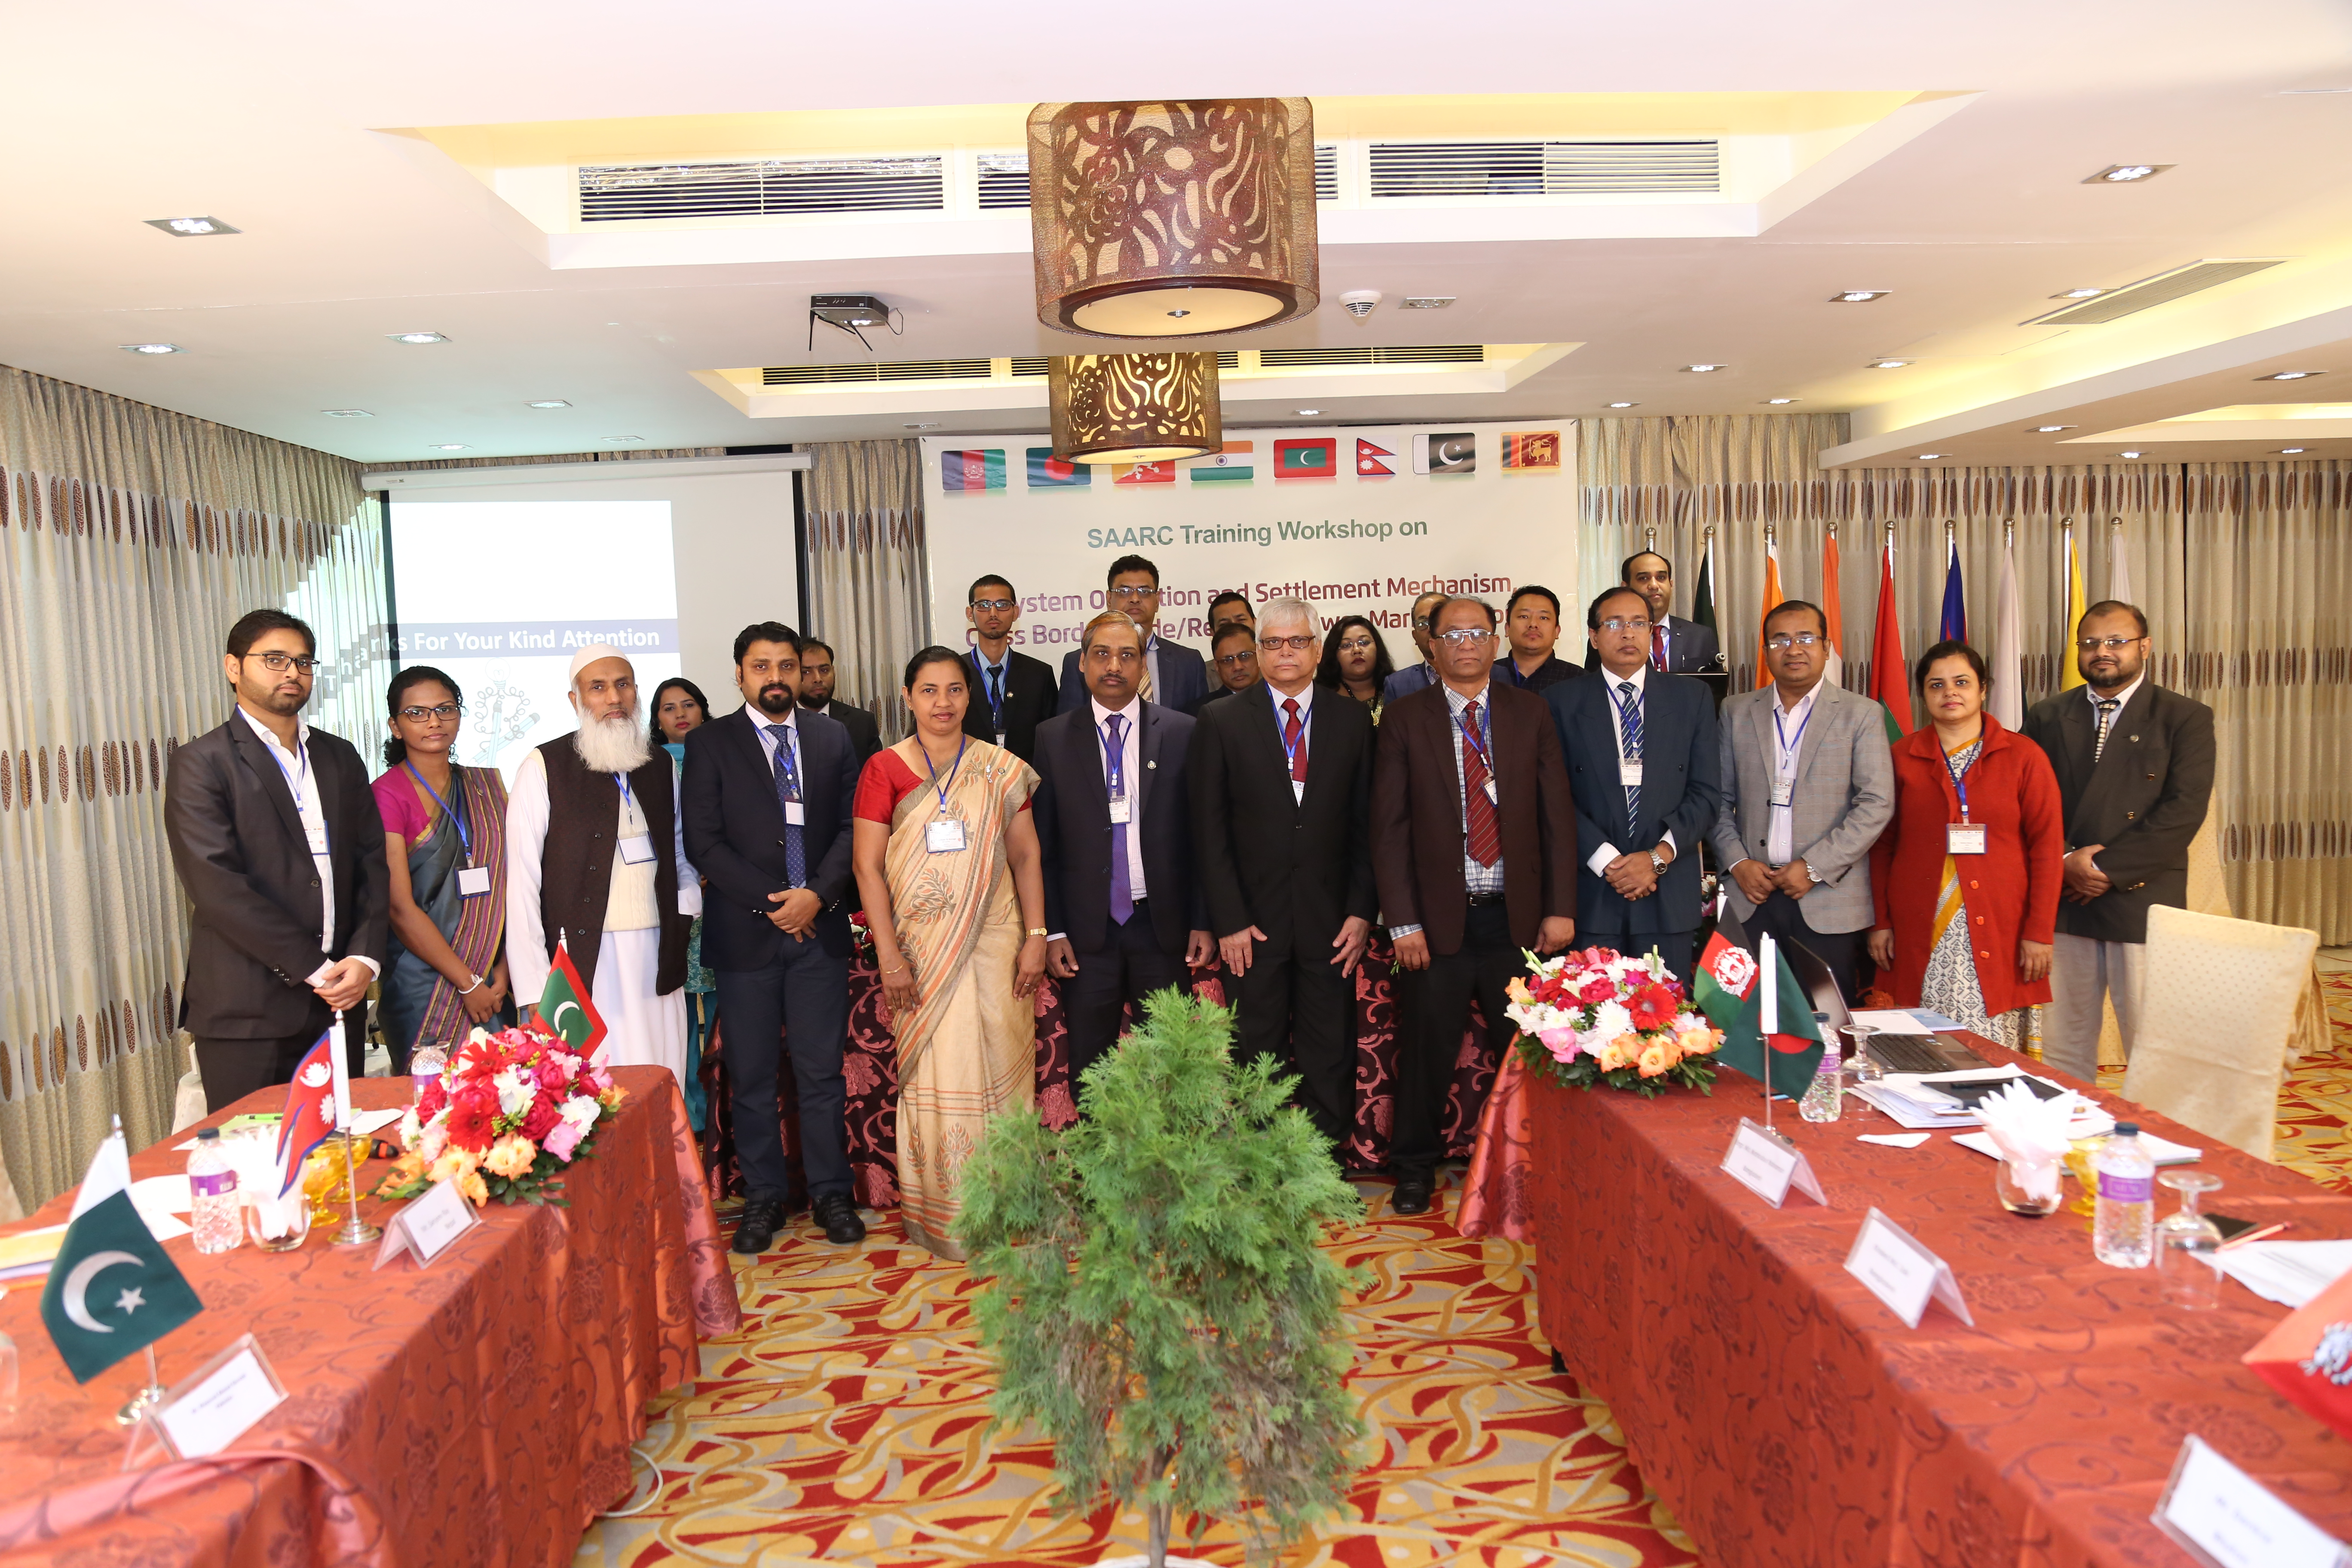 "SAARC Training Workshop on  ""System Operation and Settlement Mechanism, Cross Border Trade/Regional Power Market in South Asia""  10-11 December, 2017  The Bengal Blueberry, Dhaka, Bangladesh"